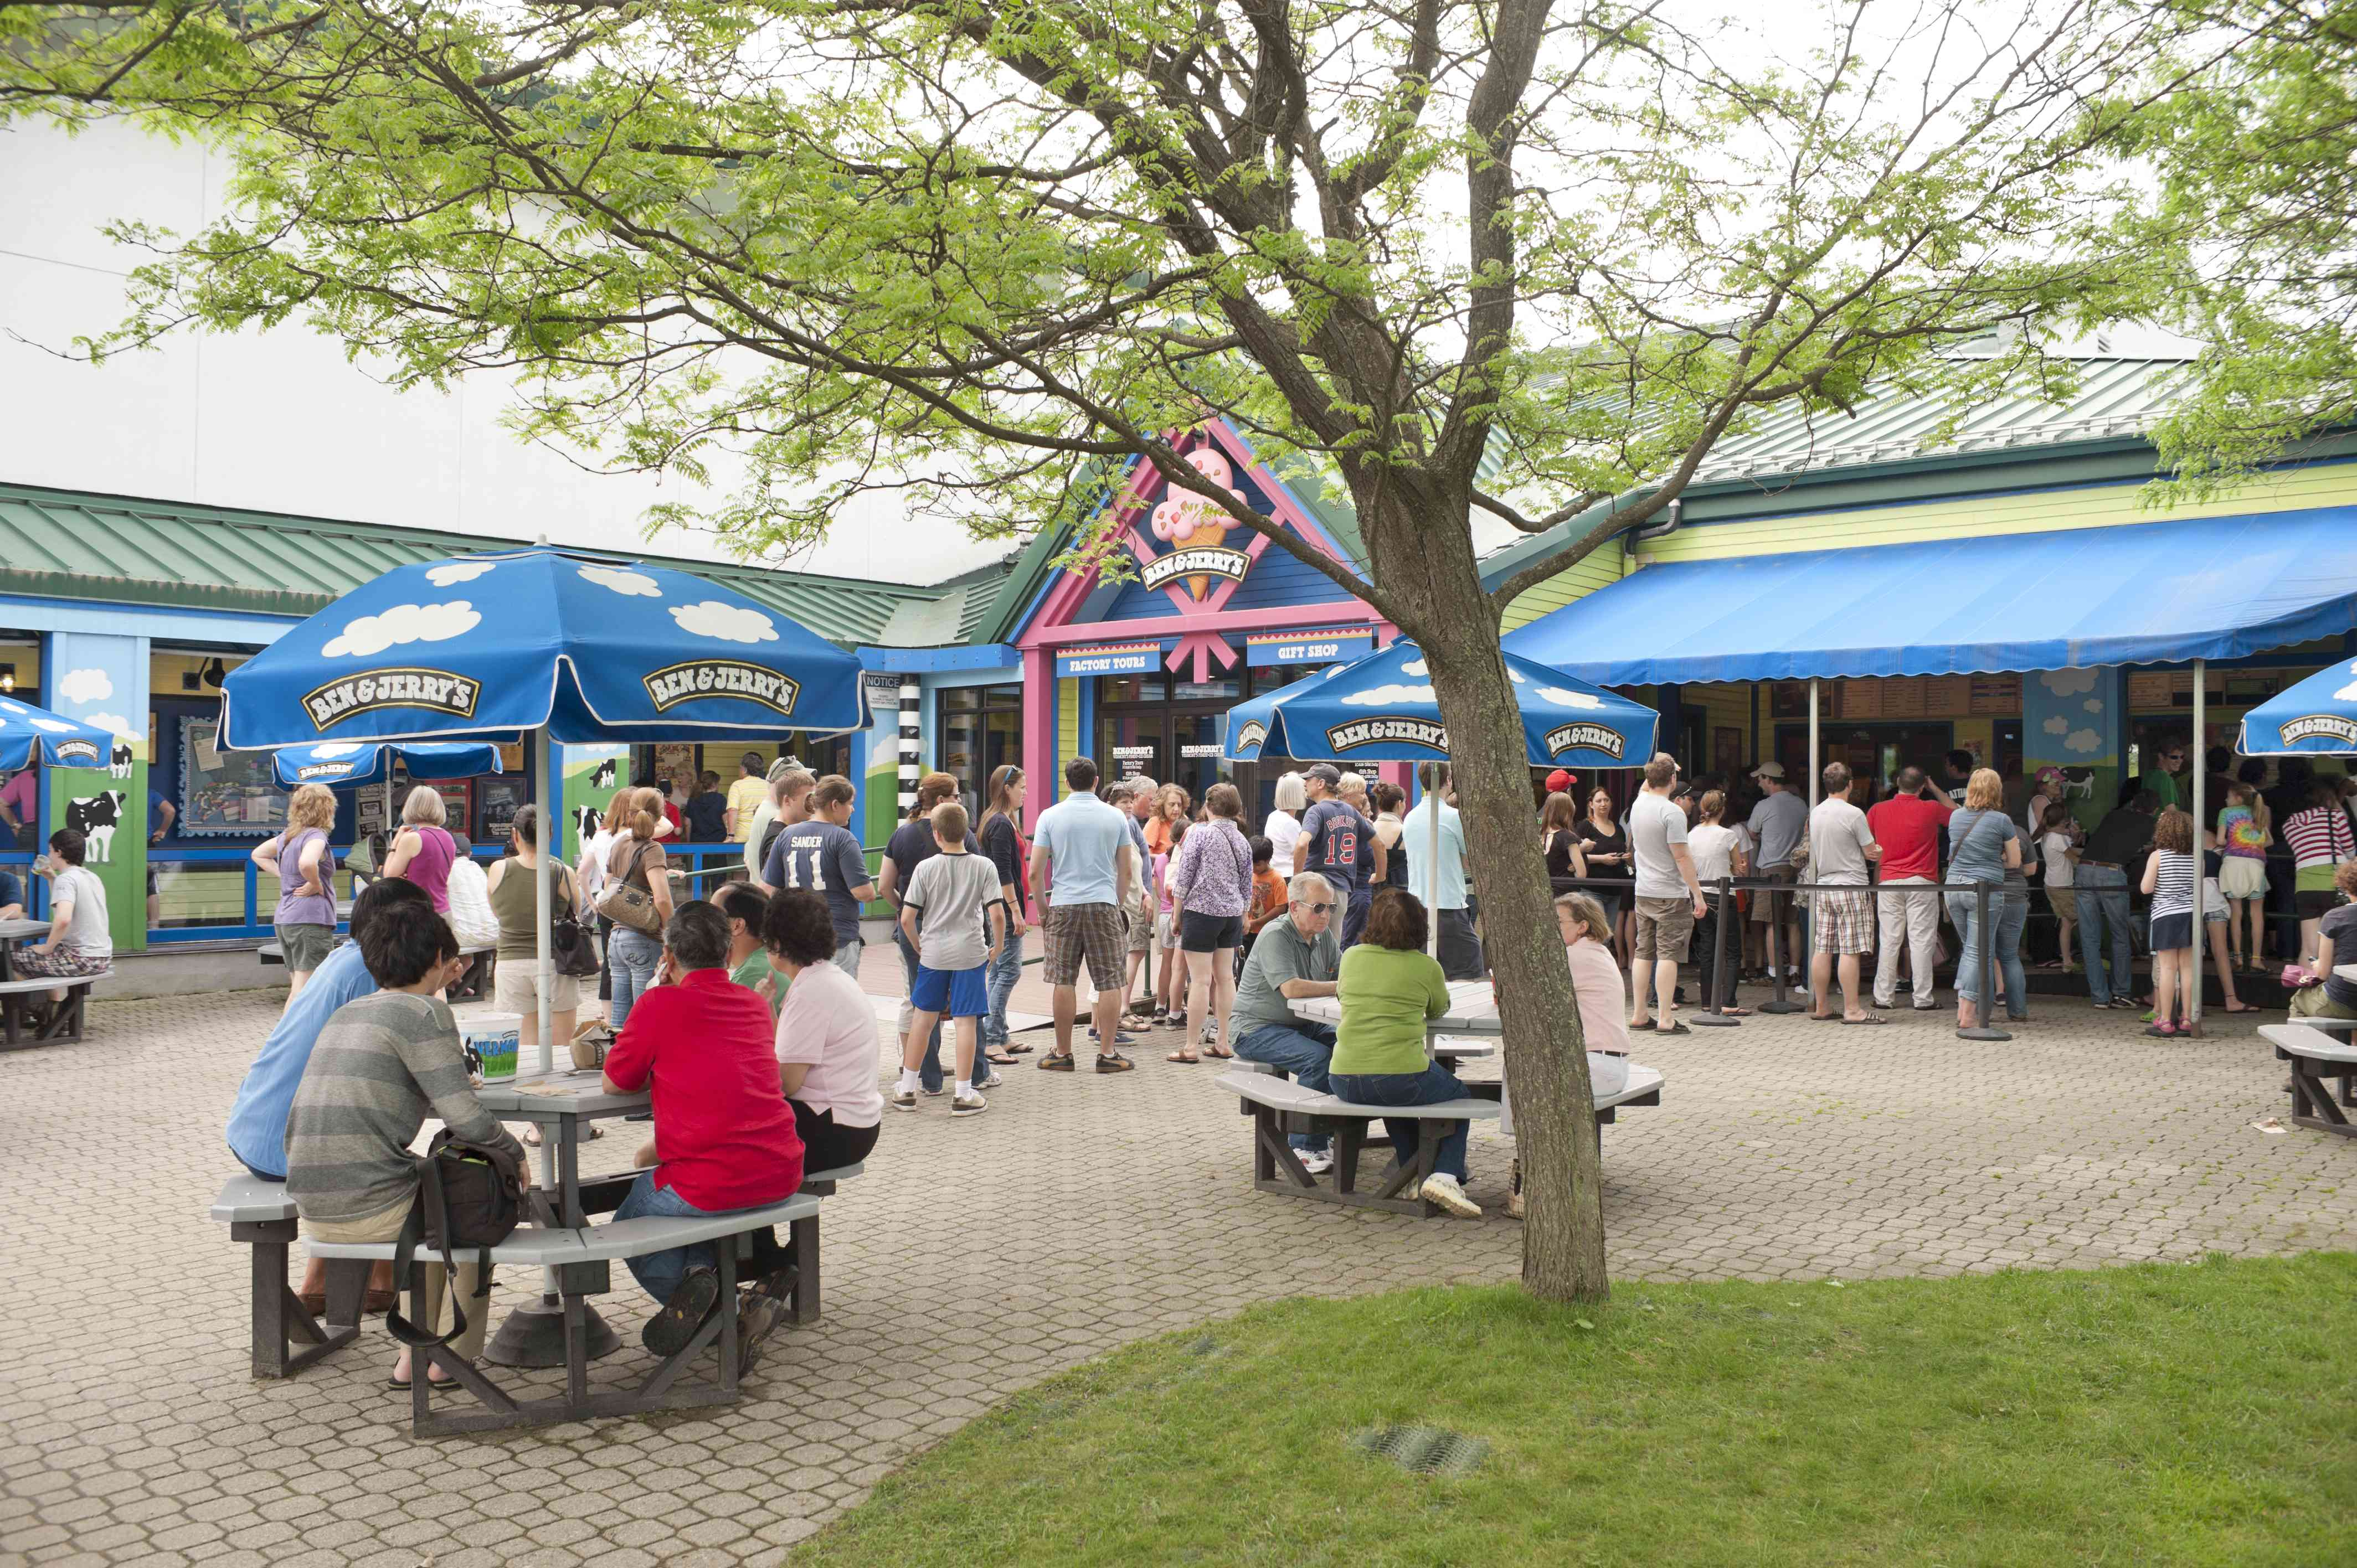 Visitors at Ben and Jerry's ice cream factory in Vermont